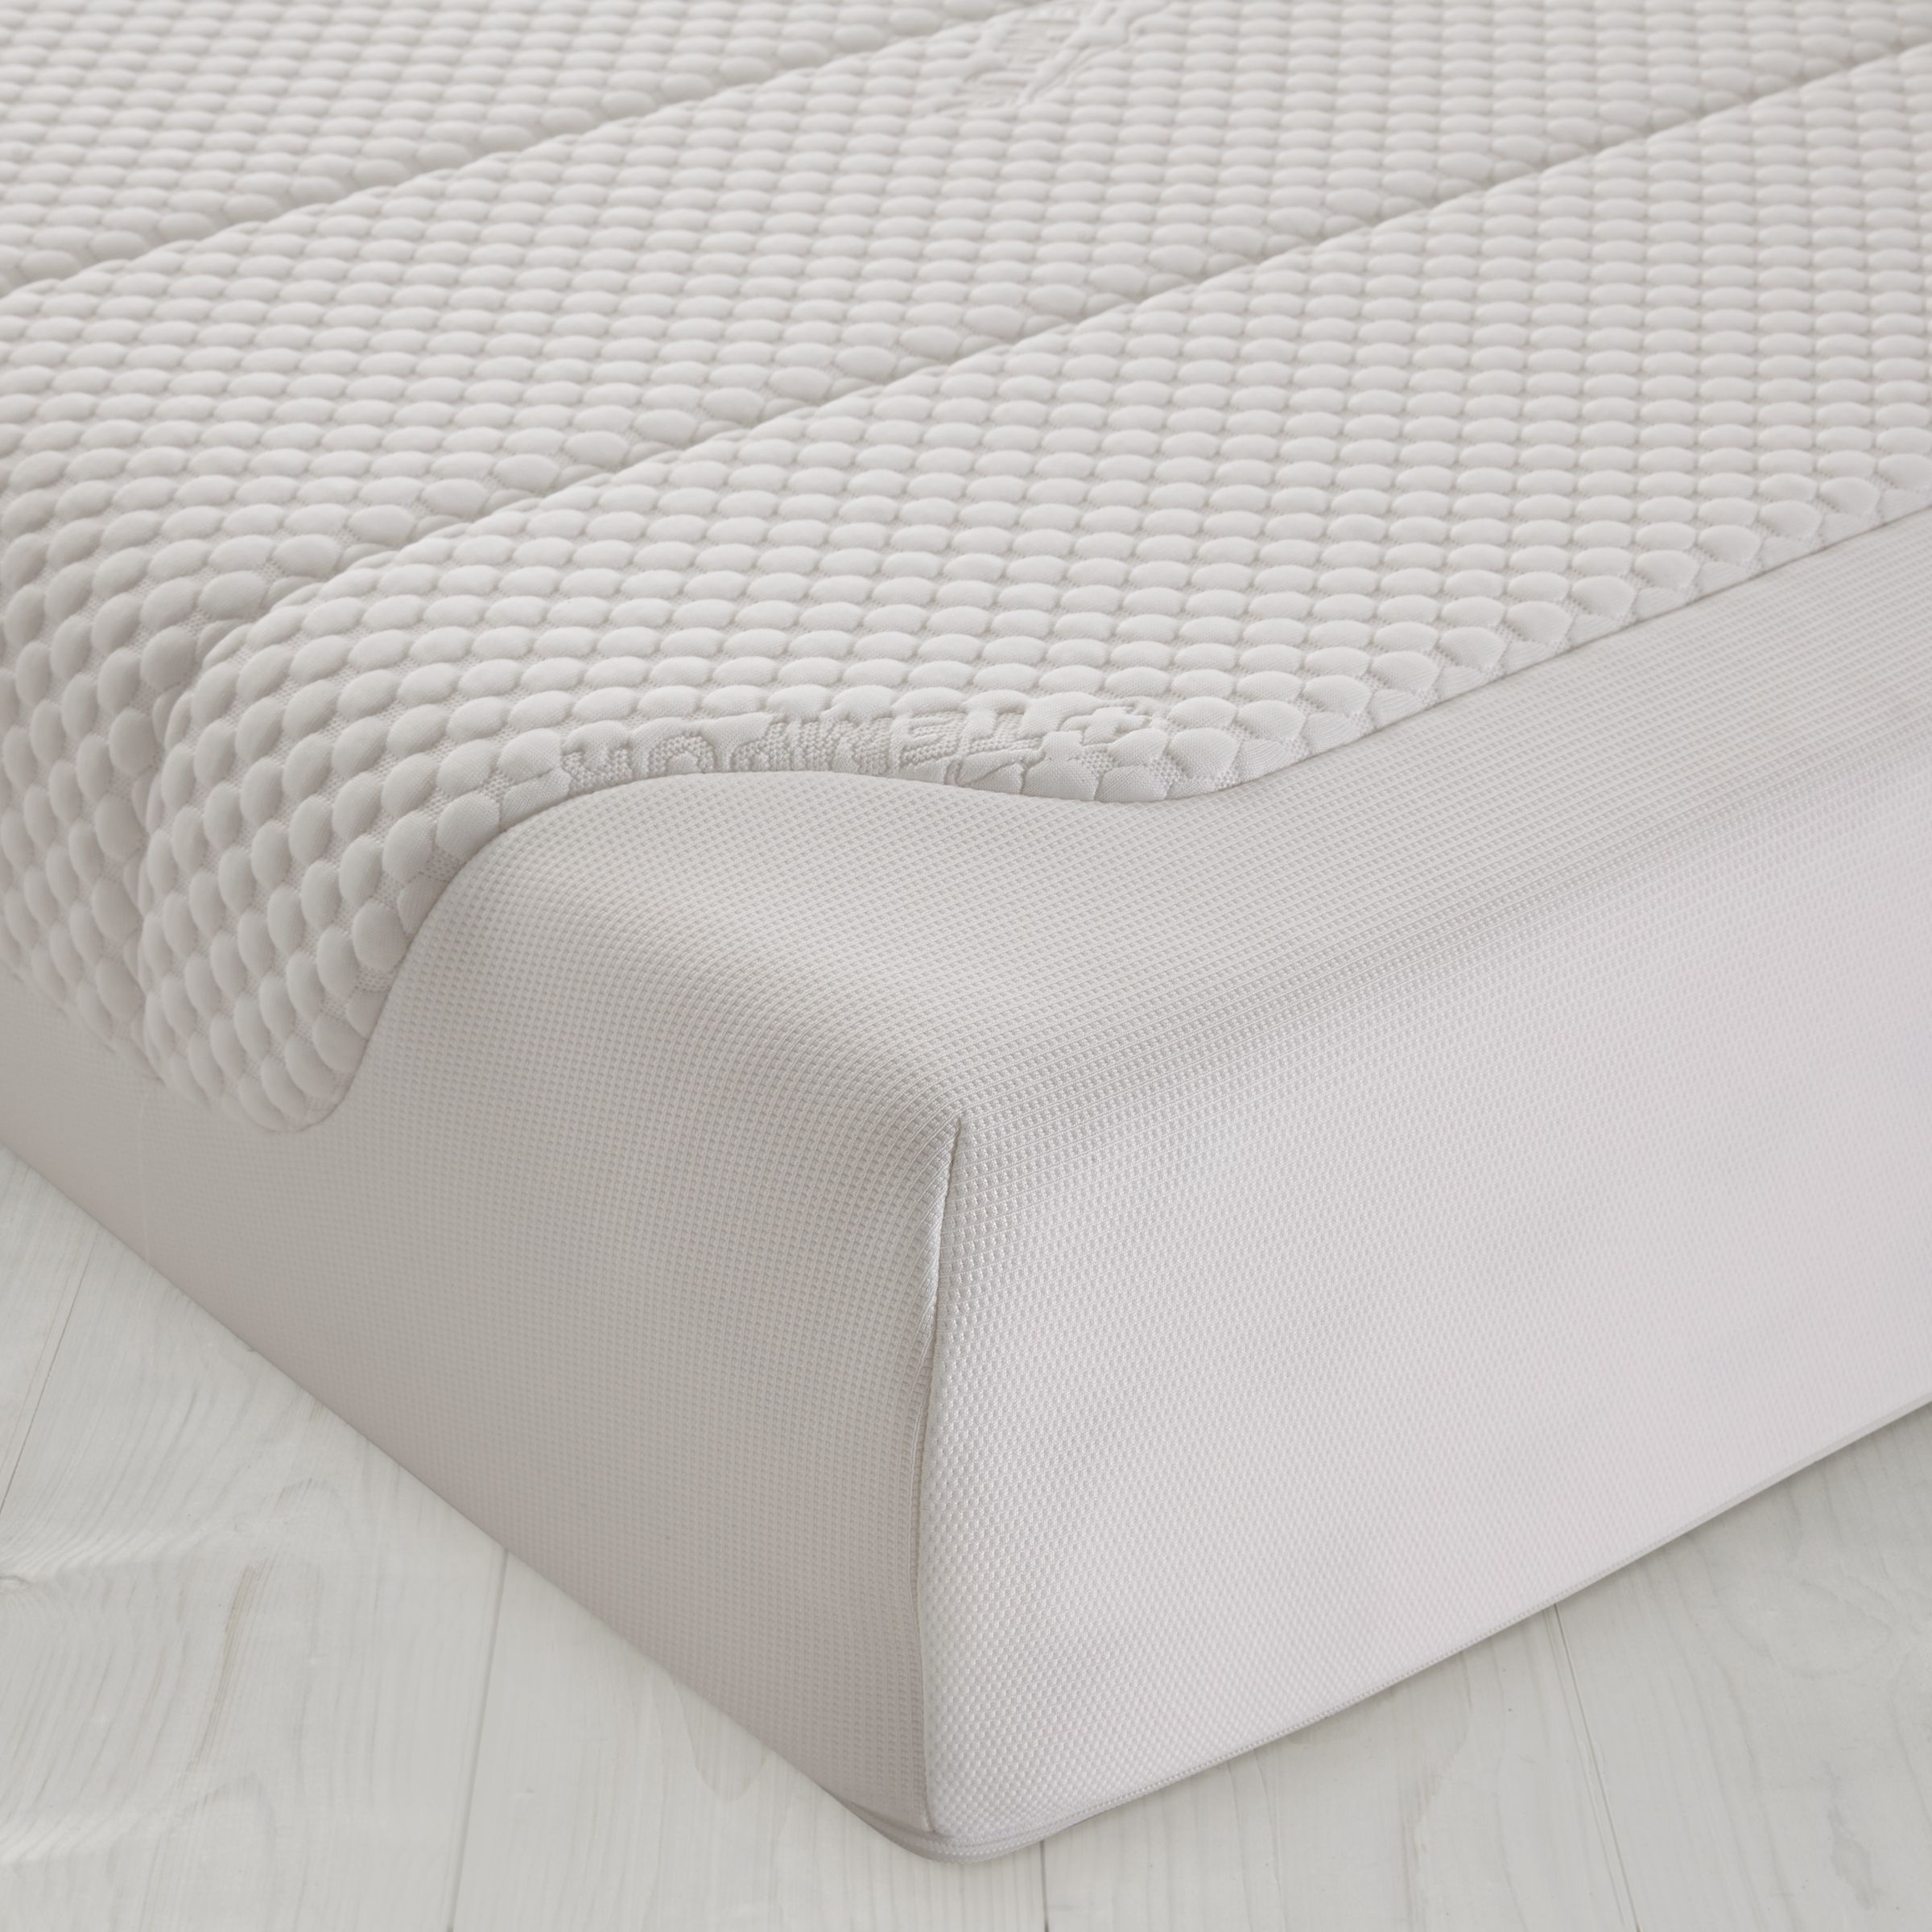 Tempur Cloud Deluxe 22 Mattress, Kingsize